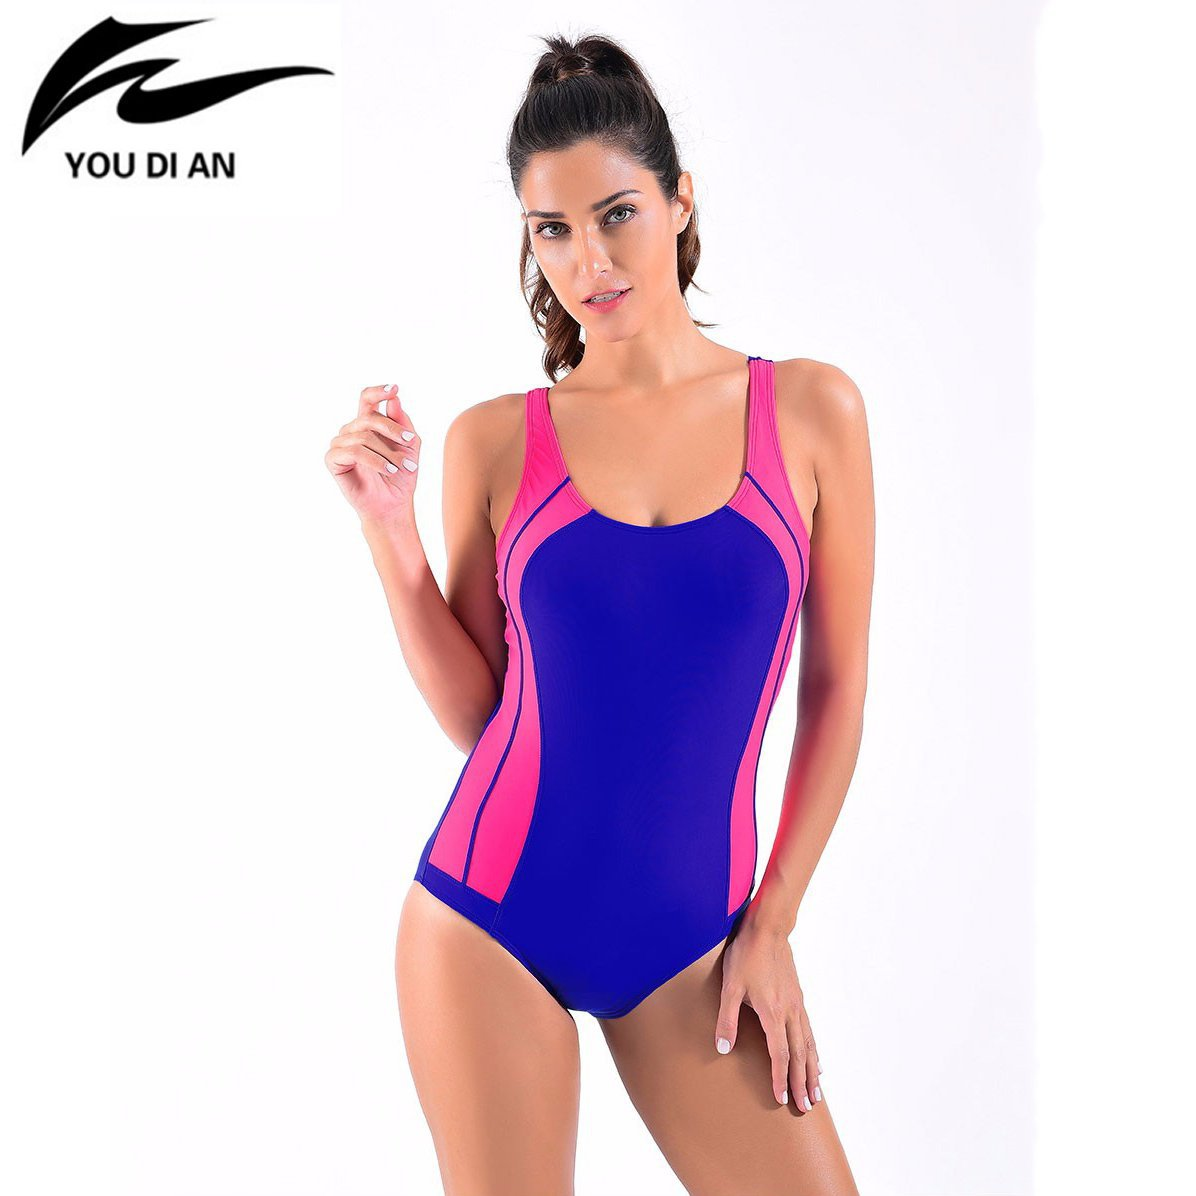 Women One Piece Swimsuit Padded Sportswear Swim suits Women Patchwork Bathing Suit-ACTIVEWEAR-SheSimplyShops